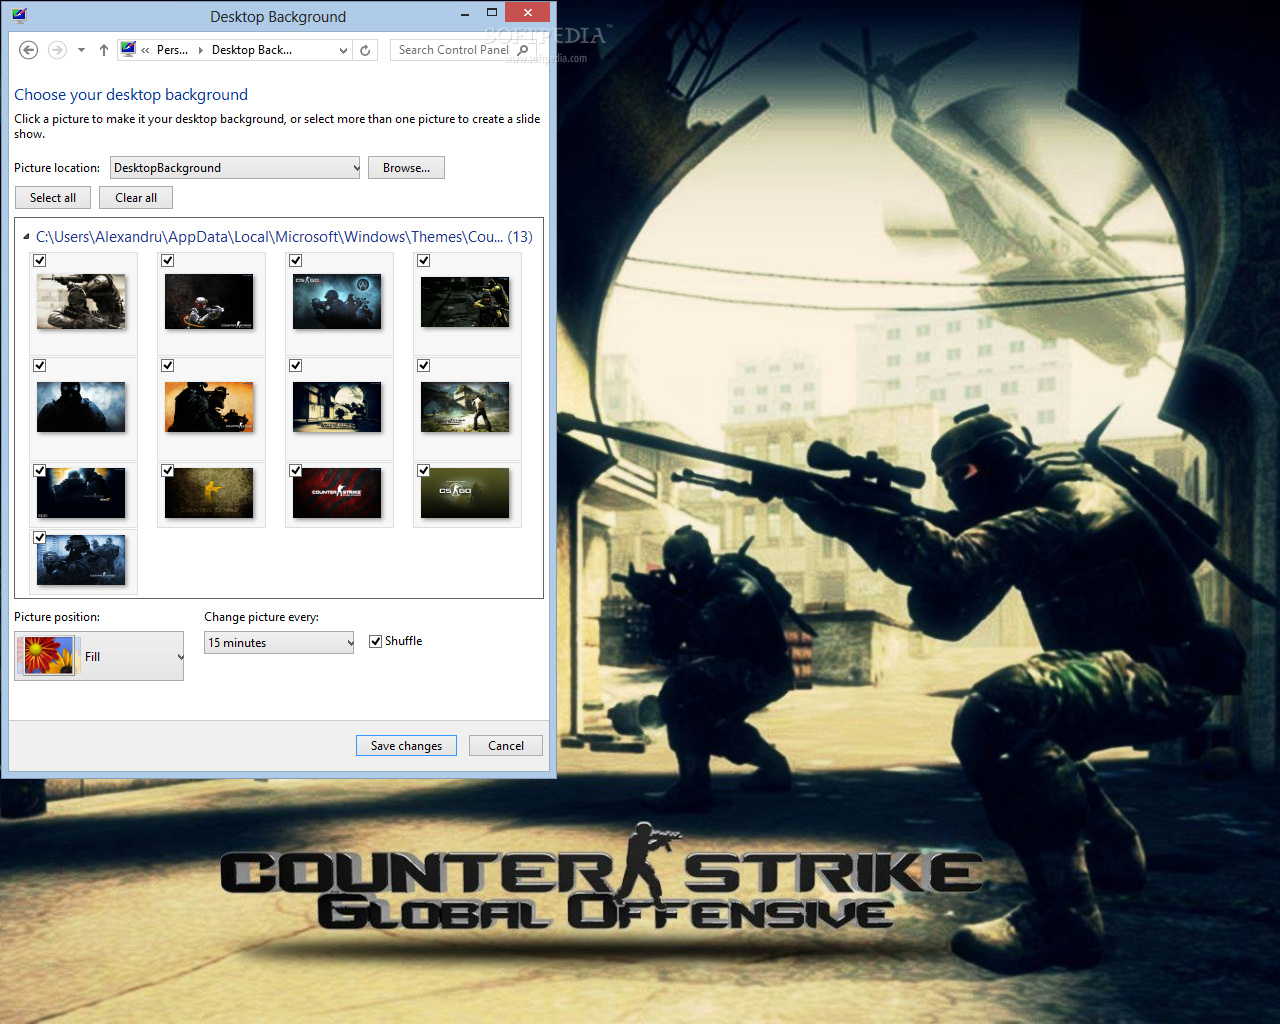 Counter strike global offensive windows 8 theme strona jak opskins